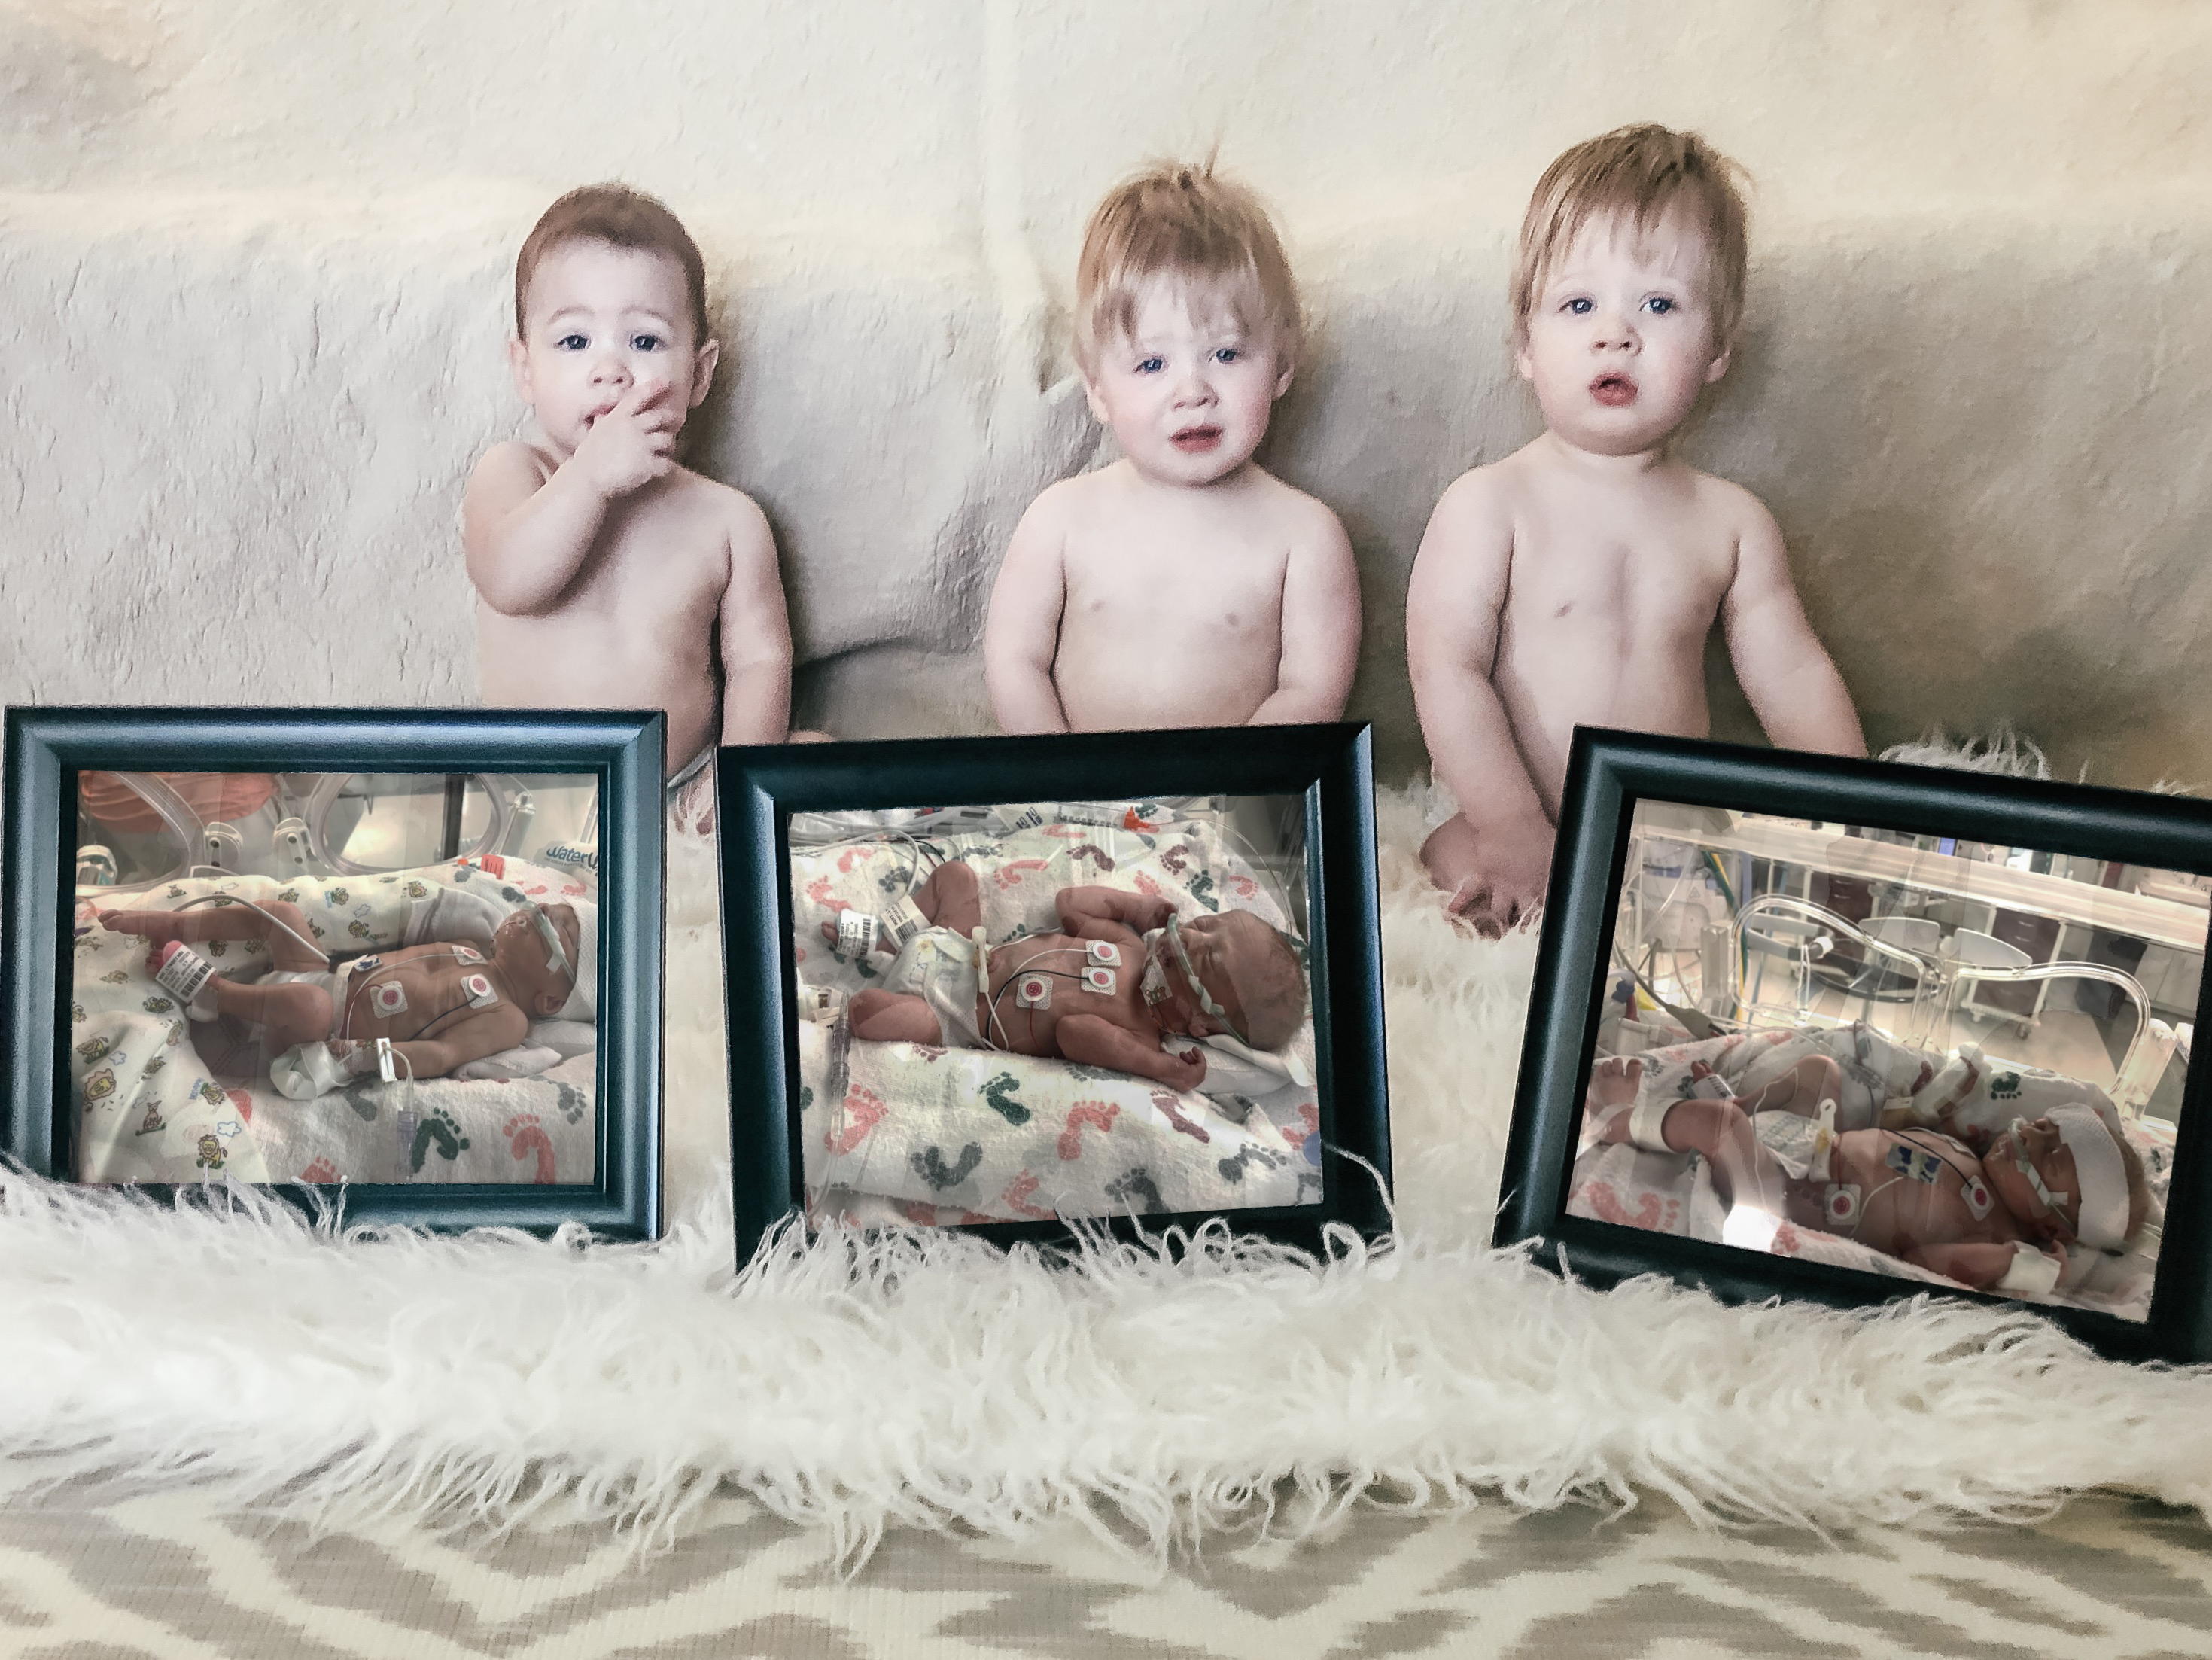 One-year-old triplets with their framed newborn pictures, color photo